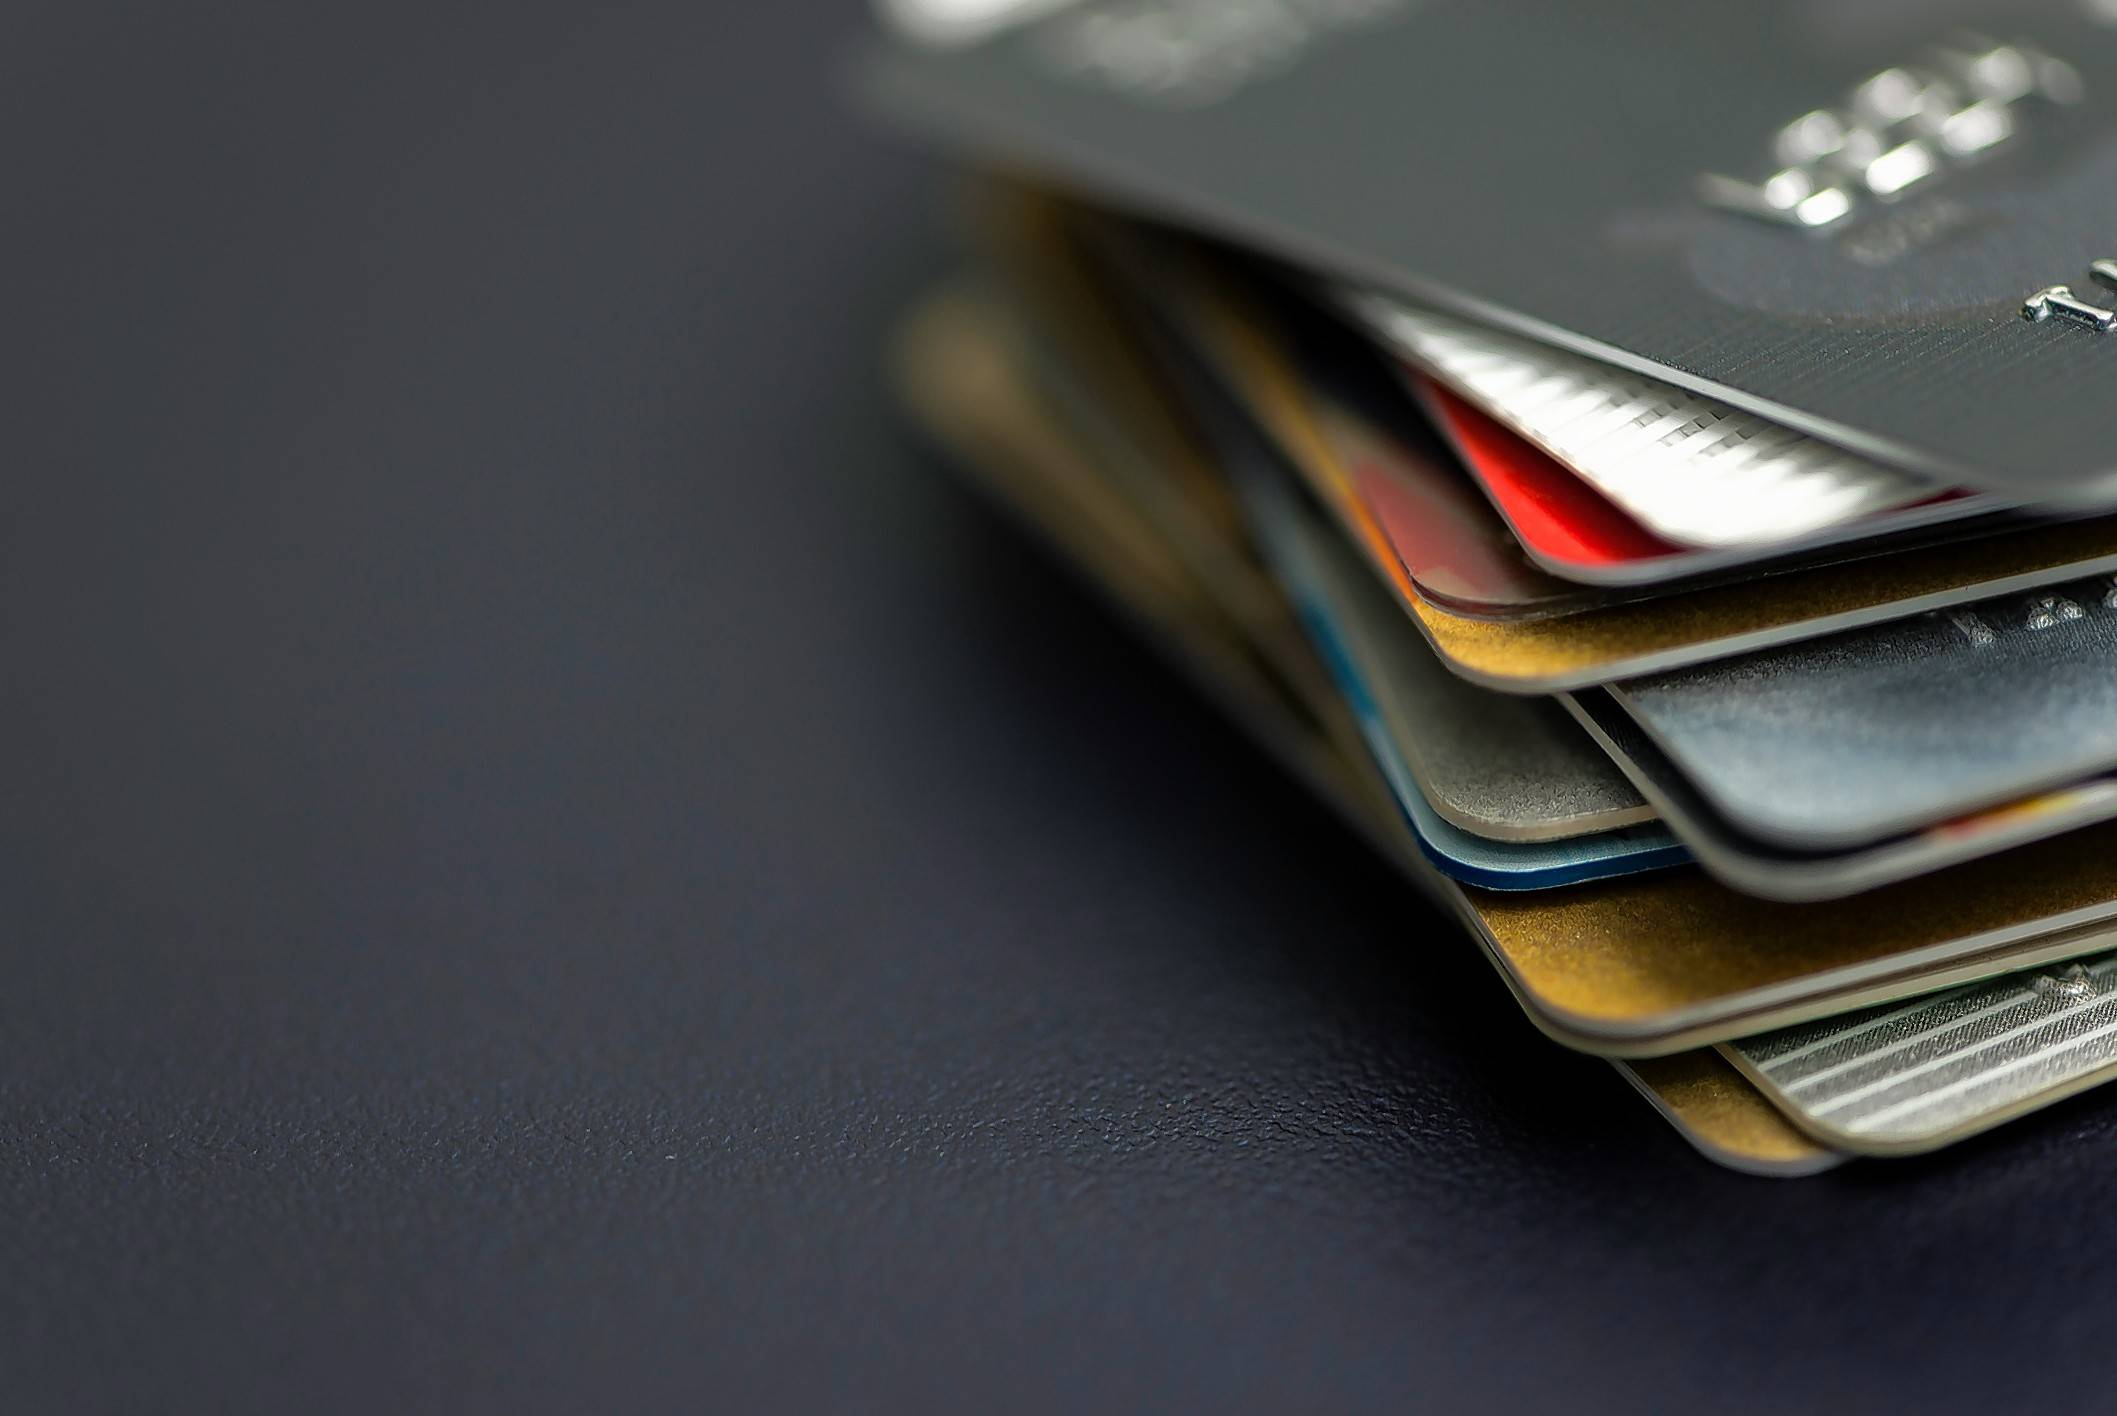 Customers filed more grievances about Credit One last year than Citigroup and JPMorgan Chase combined, although the Las Vegas-based lender has issued a 13th as many cards, according to Federal Trade Commission data.